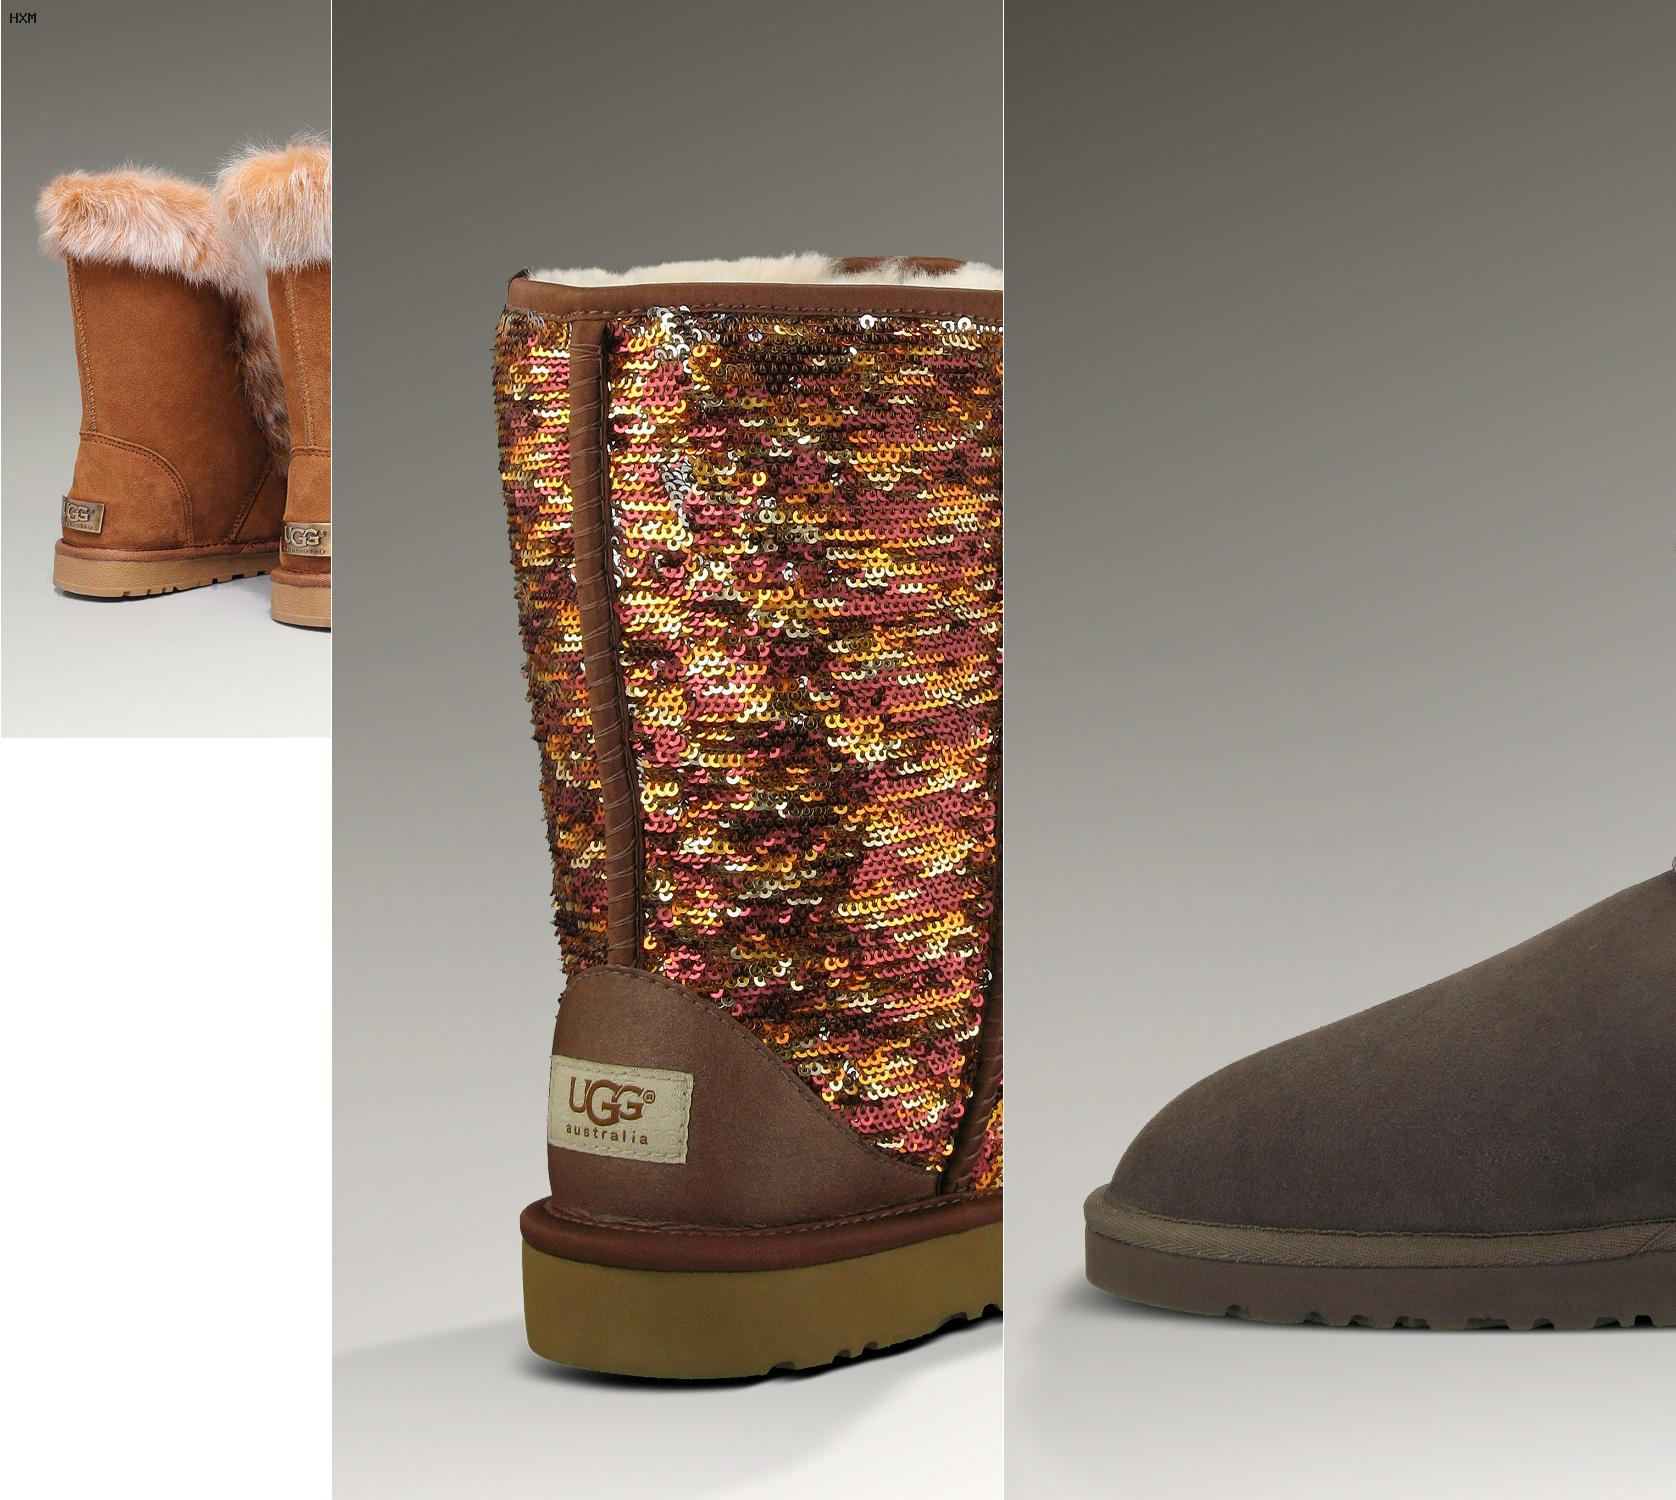 preis ugg boots new york